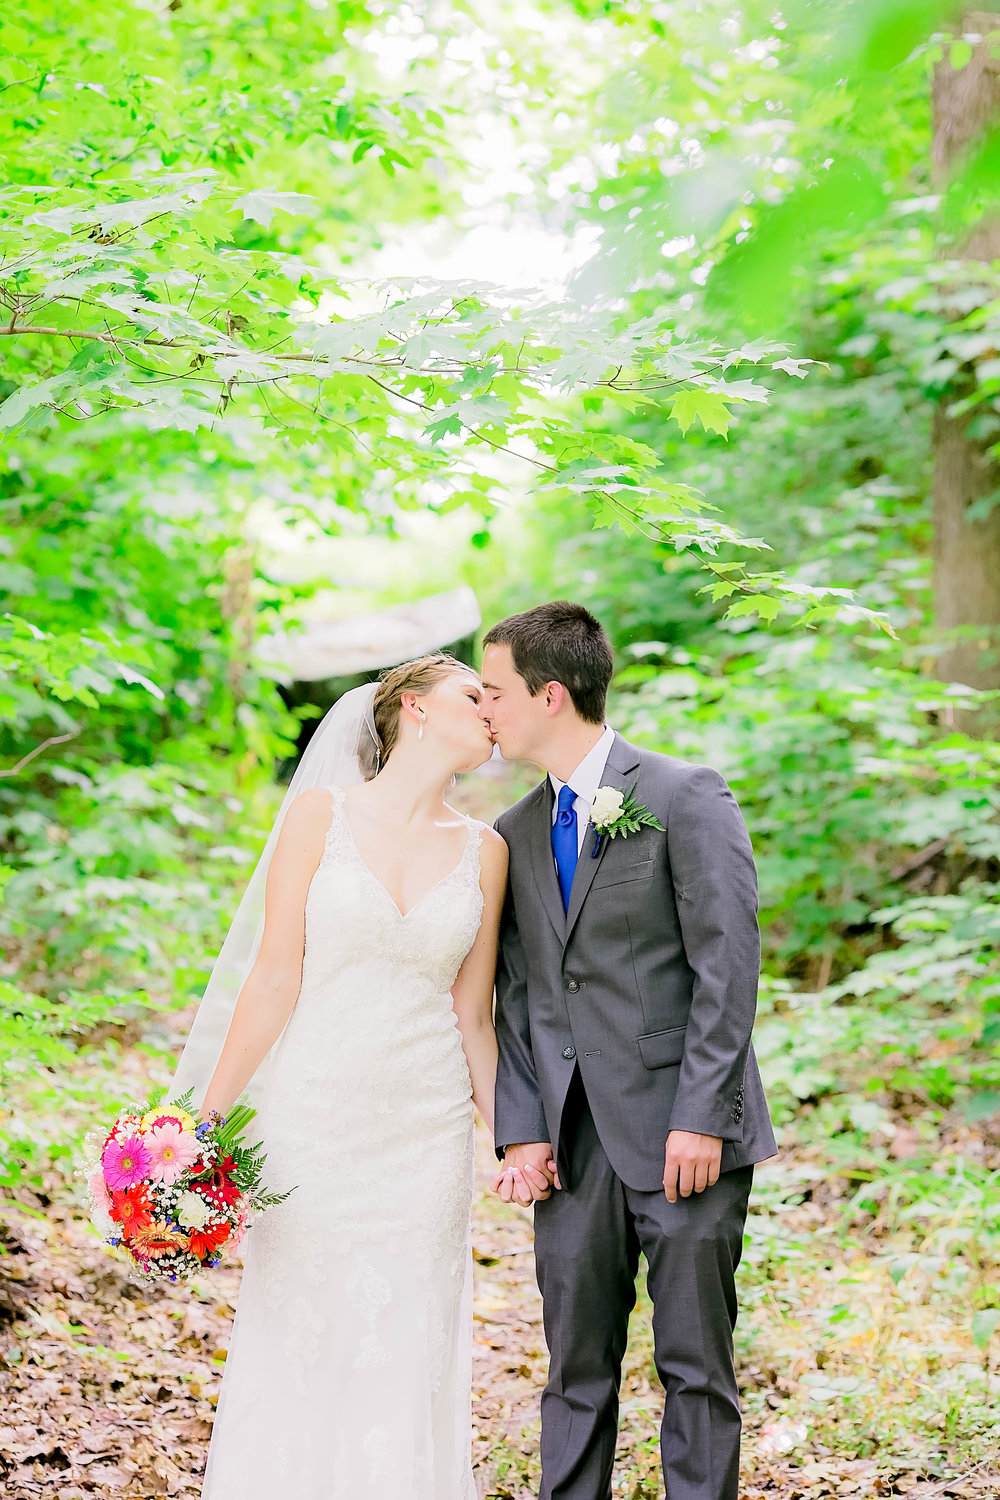 Hot Springs, NC wedding, East Tennessee Wedding photography, bride and groom portrait